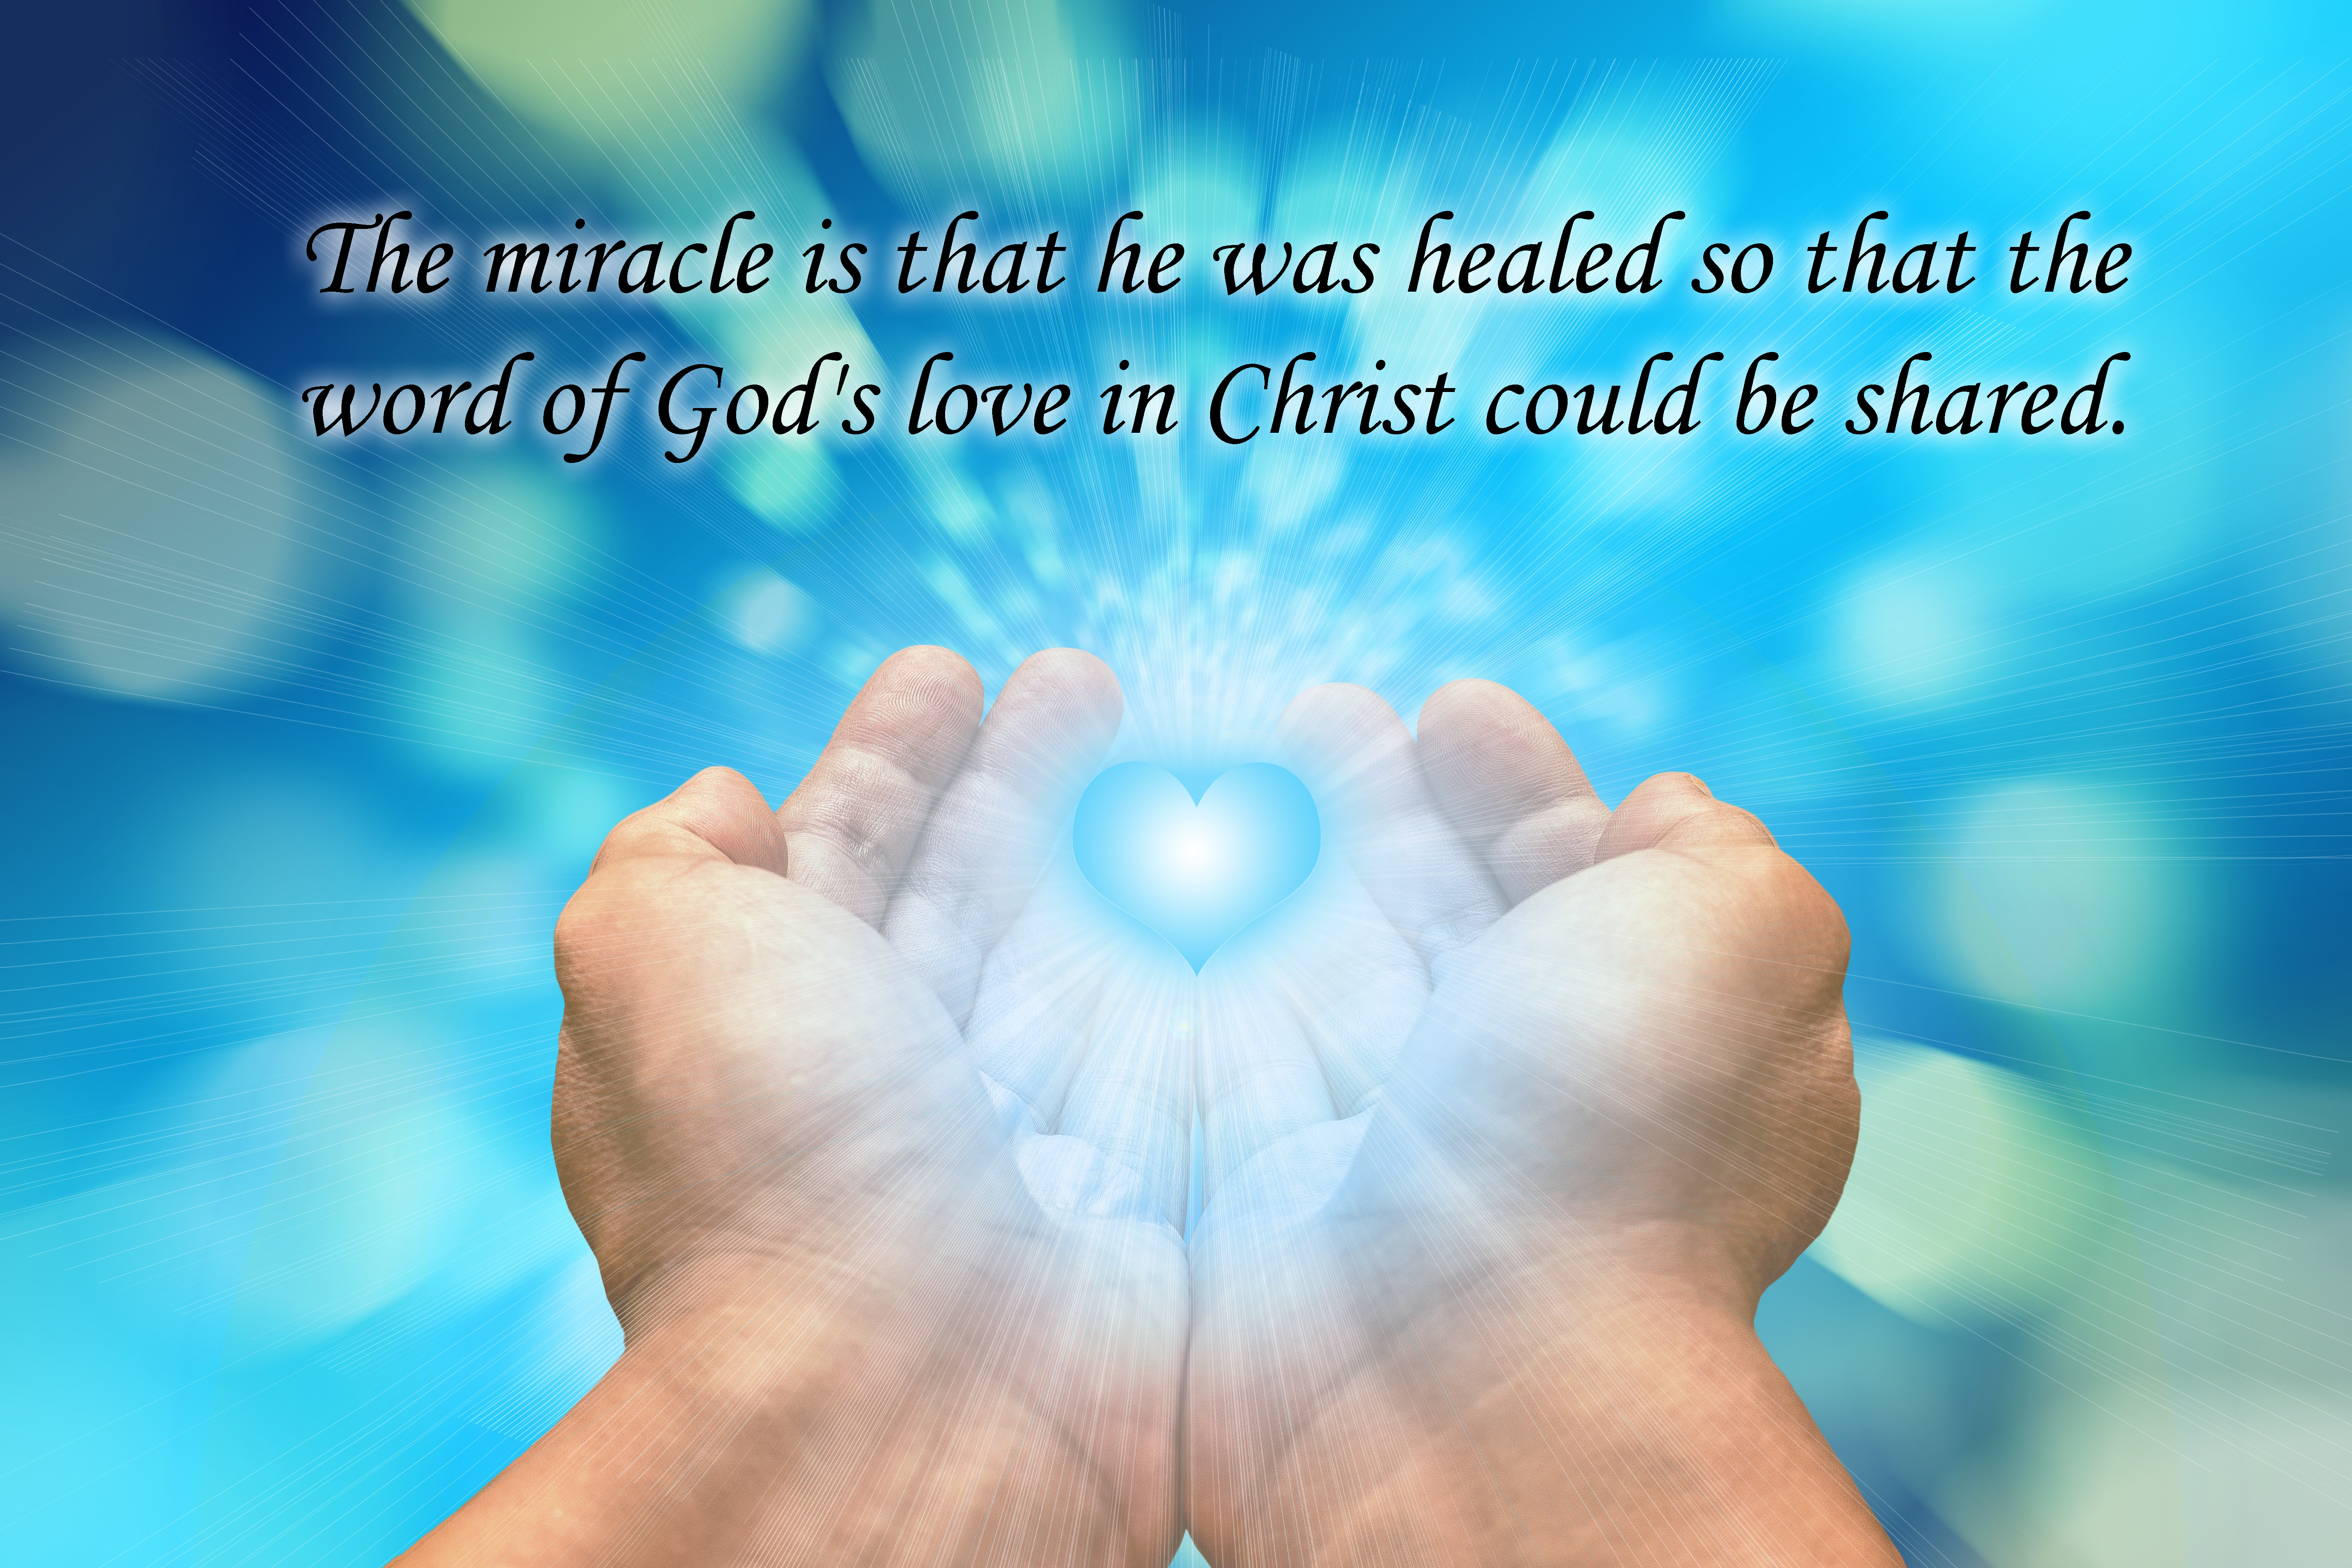 The miracle is that he was healed so that the word of God's love in Christ could be shared.